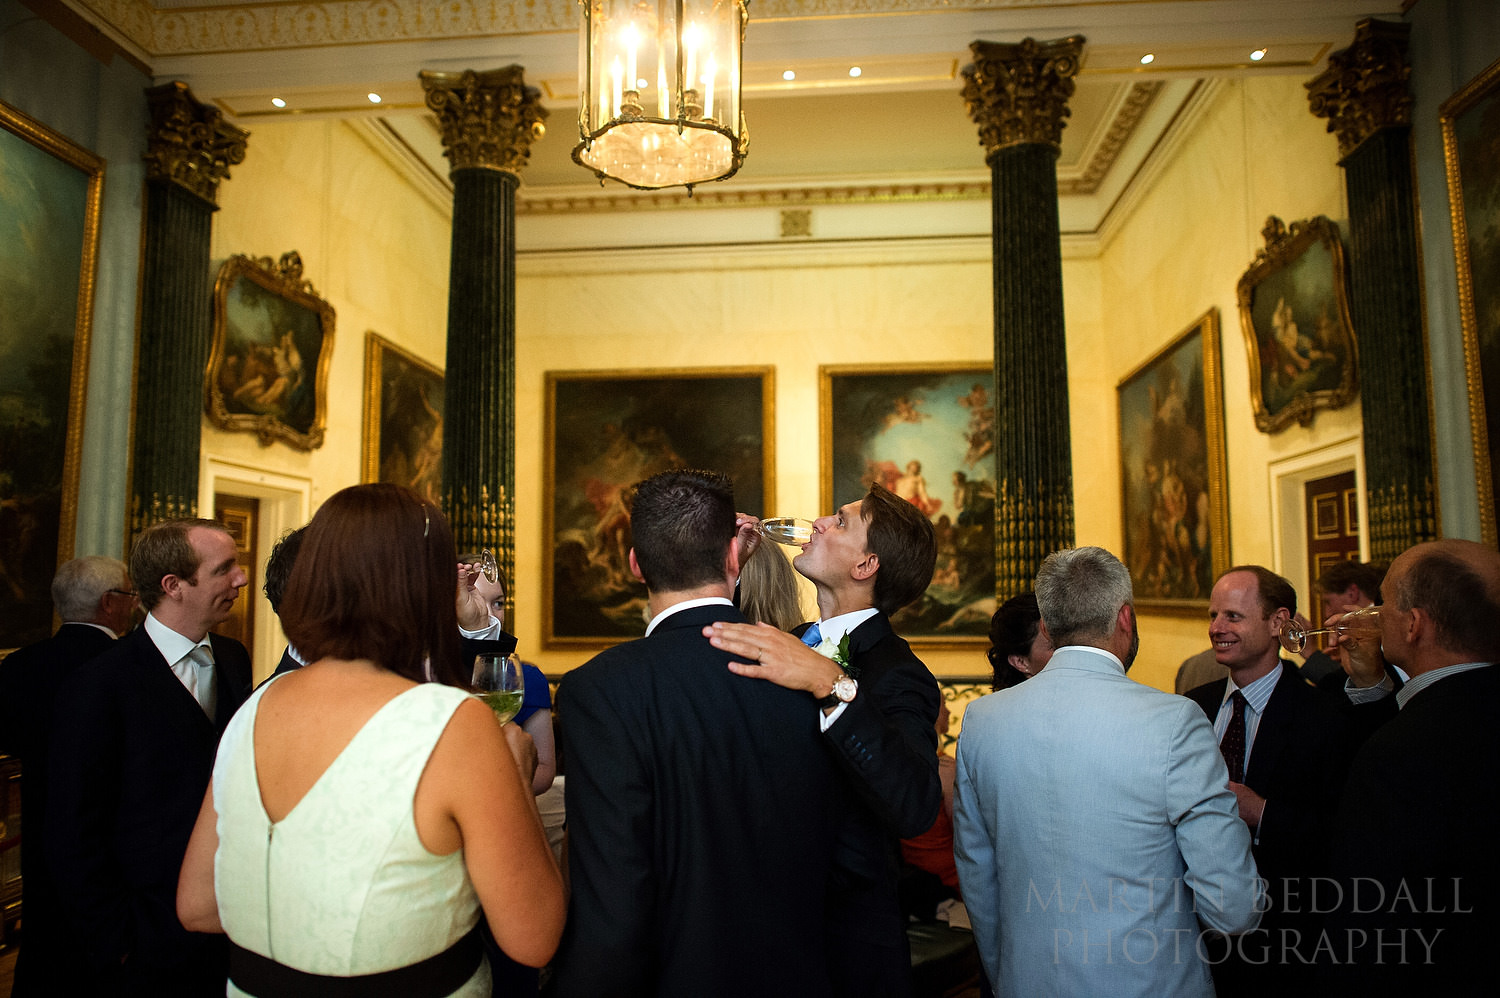 Wedding reception at The Wallace Collection in London